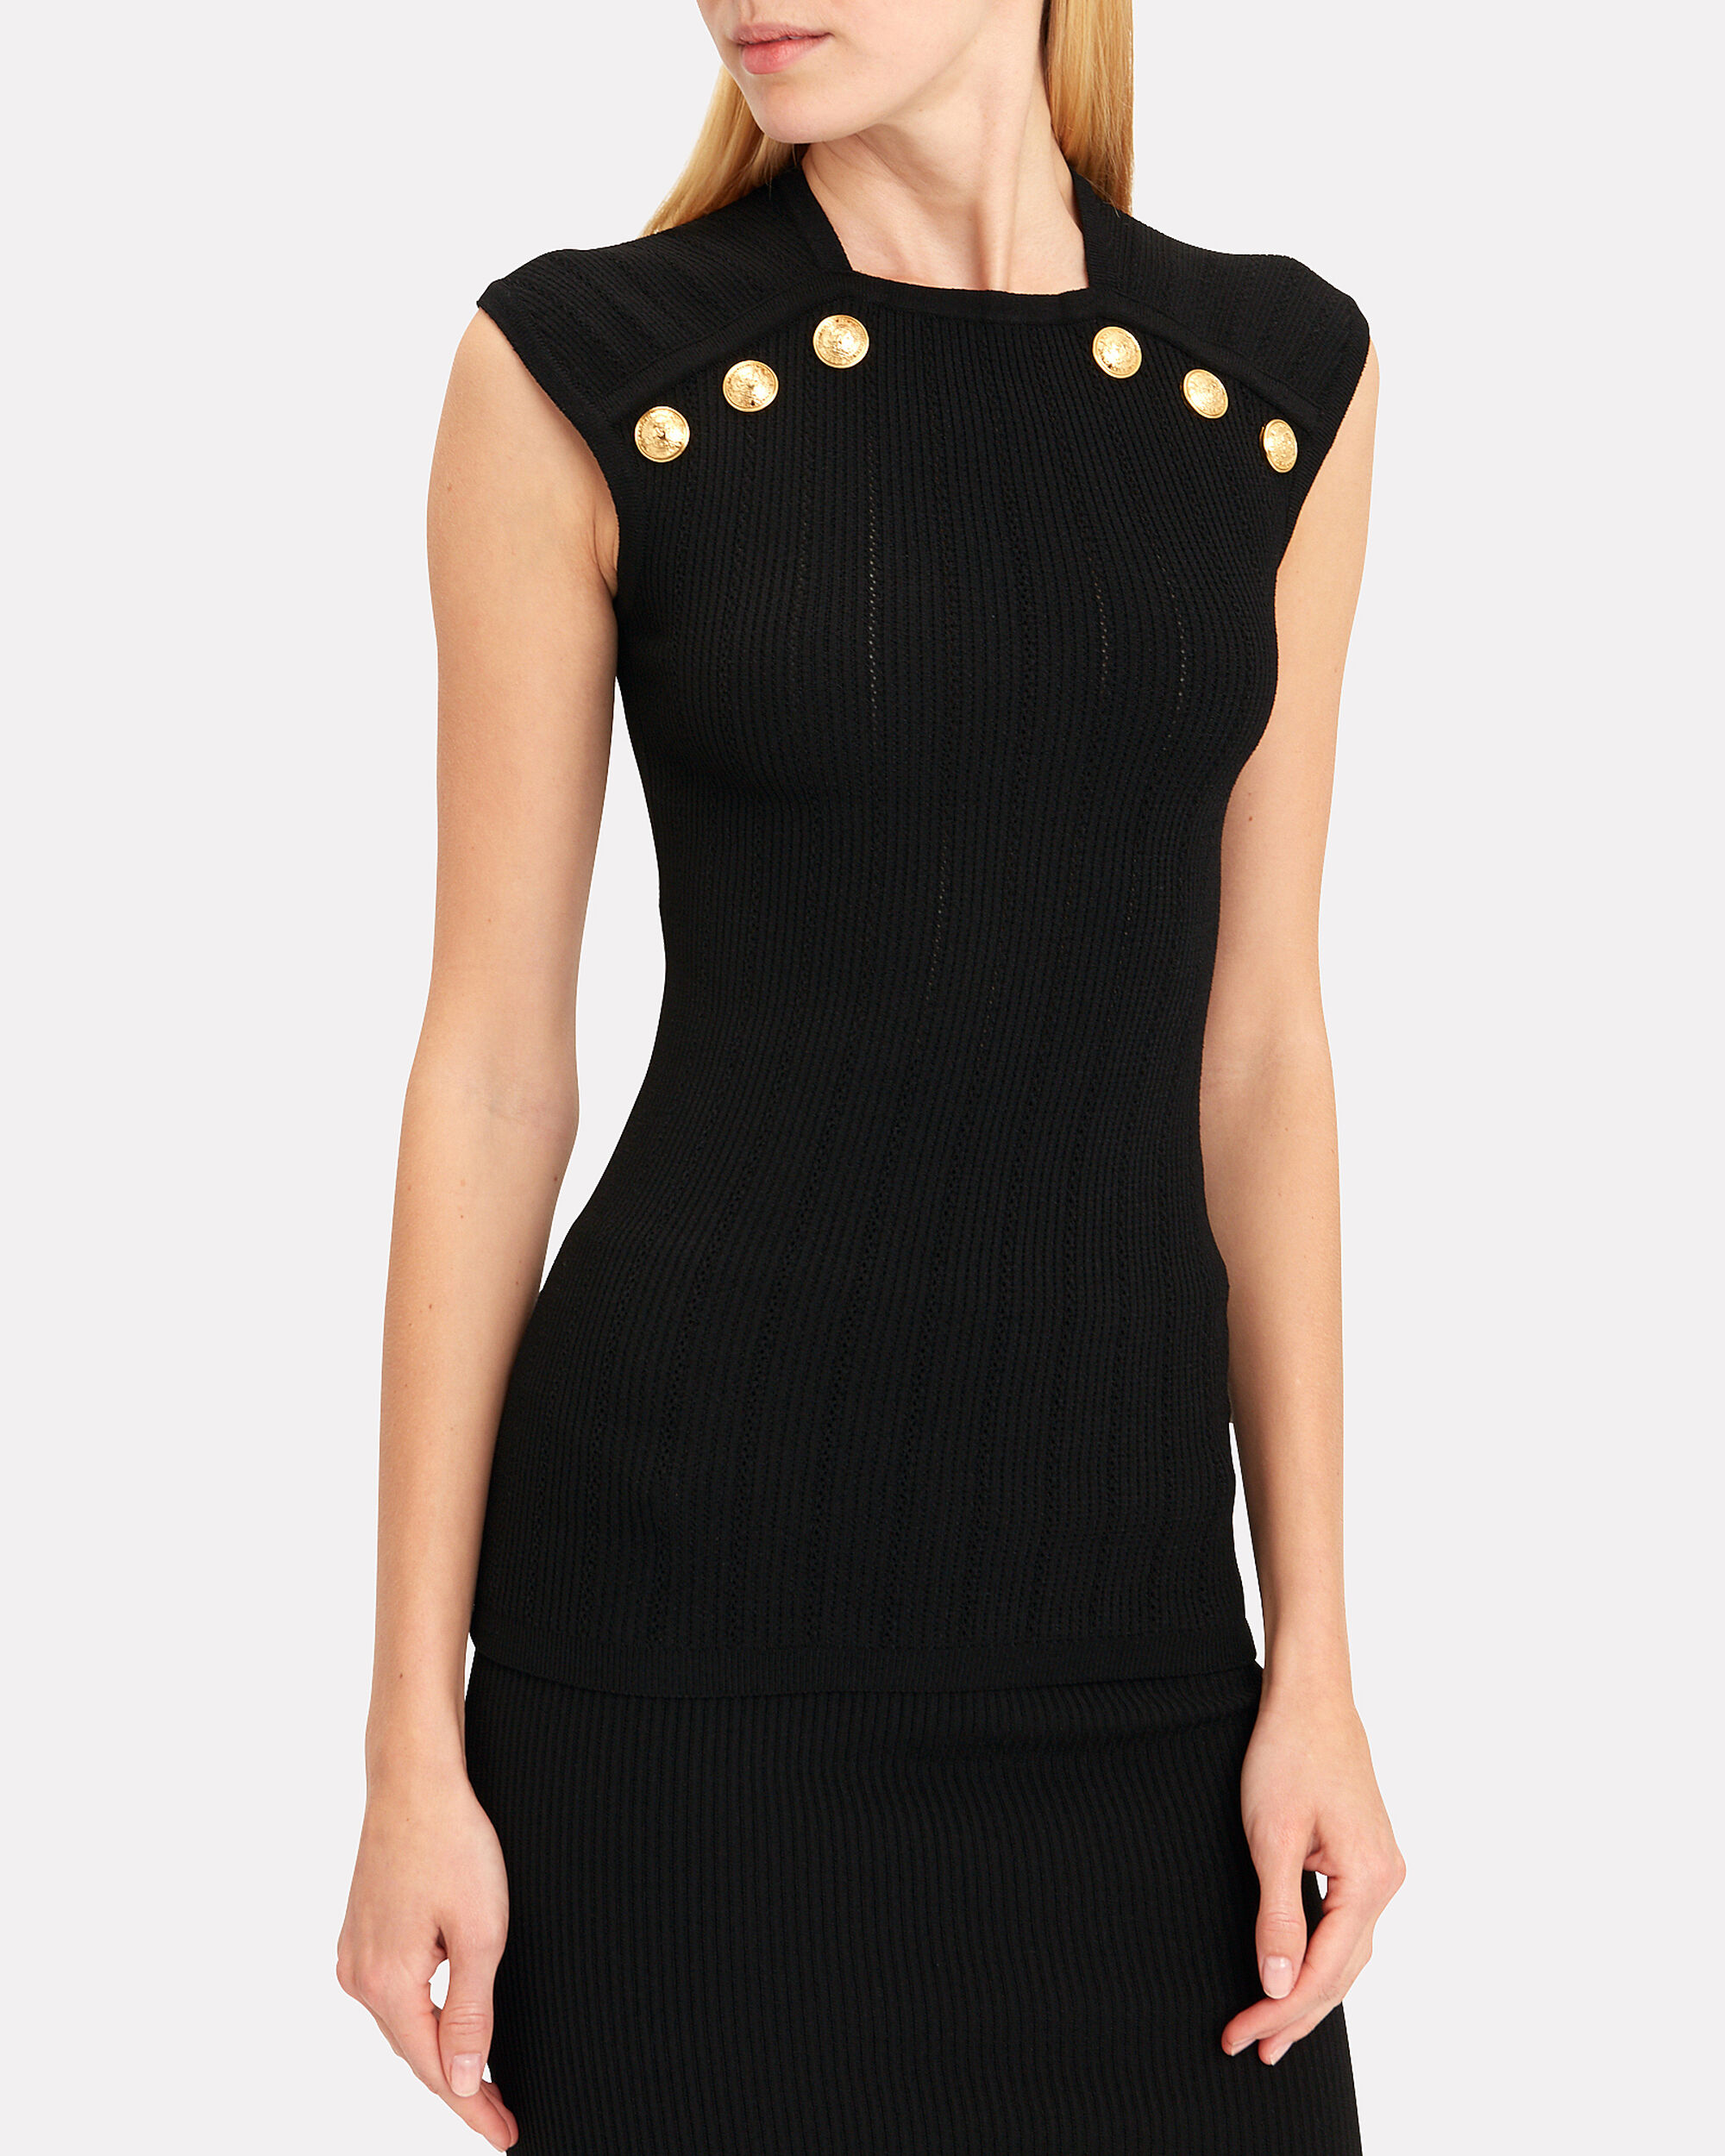 Button-Embellished Knit Top, BLACK, hi-res